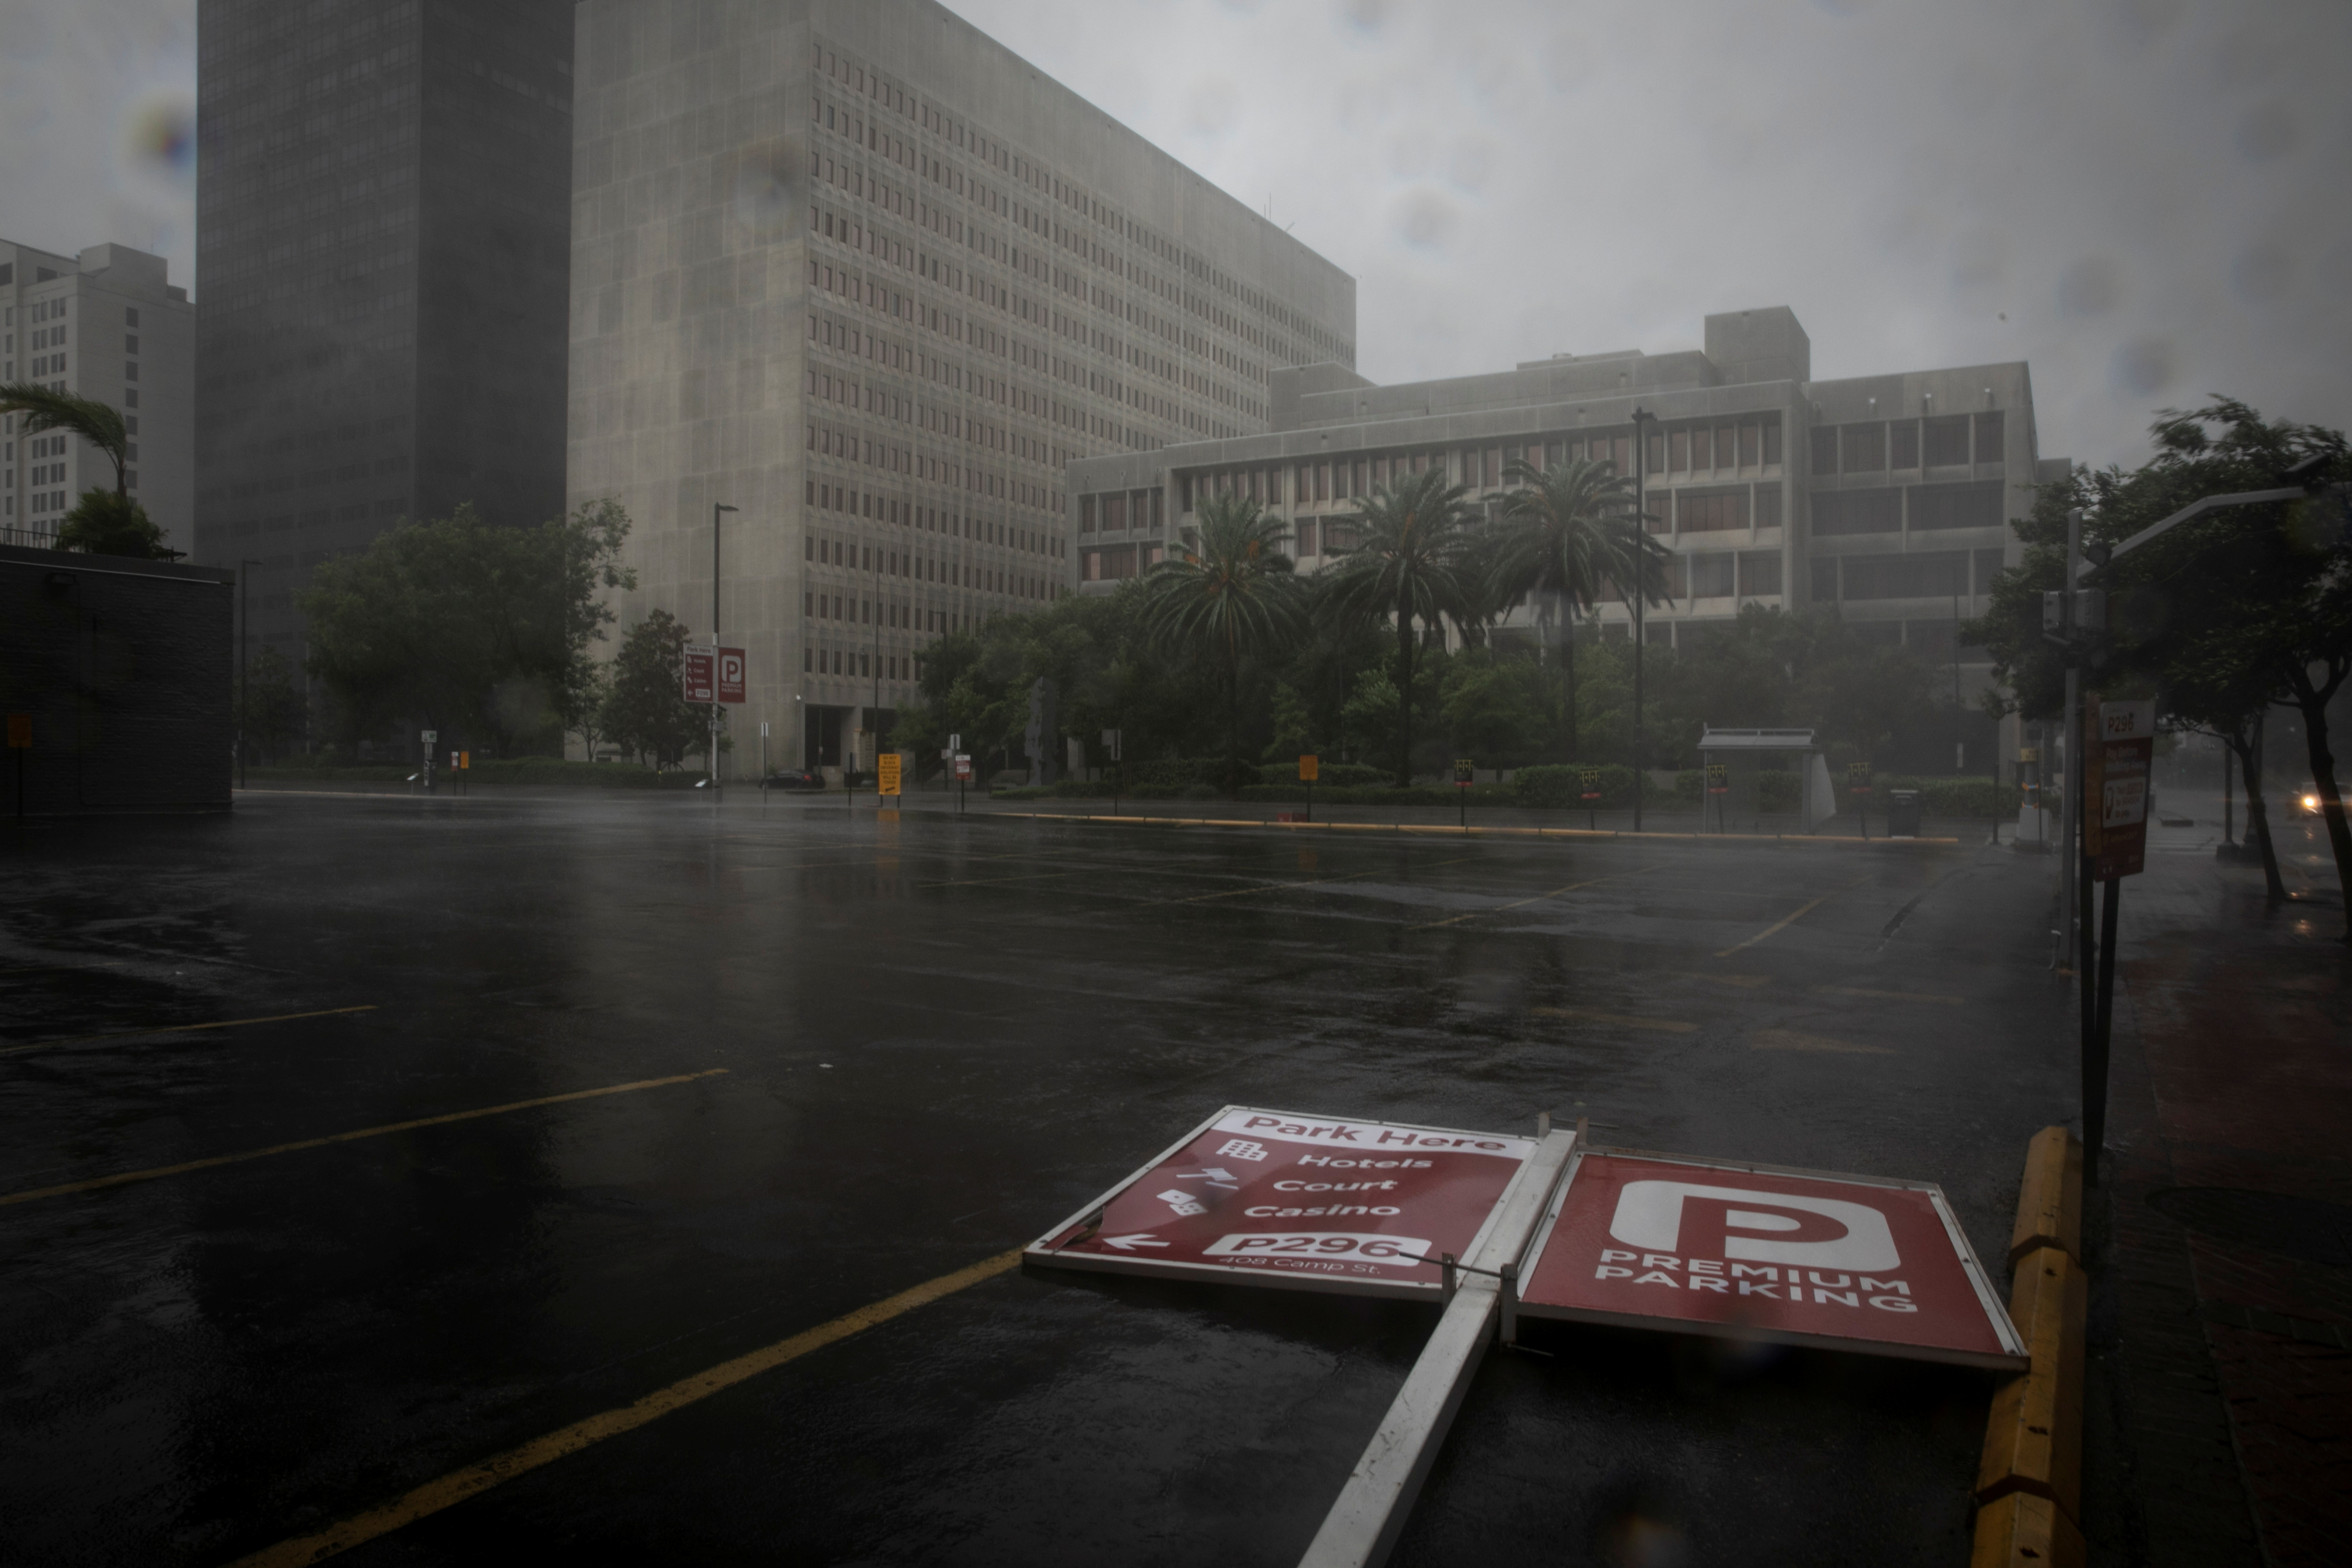 A parking sign lies in the street as Hurricane Ida makes landfall in Louisiana, in New Orleans, Louisiana, August 29, 2021. REUTERS/Marco Bello